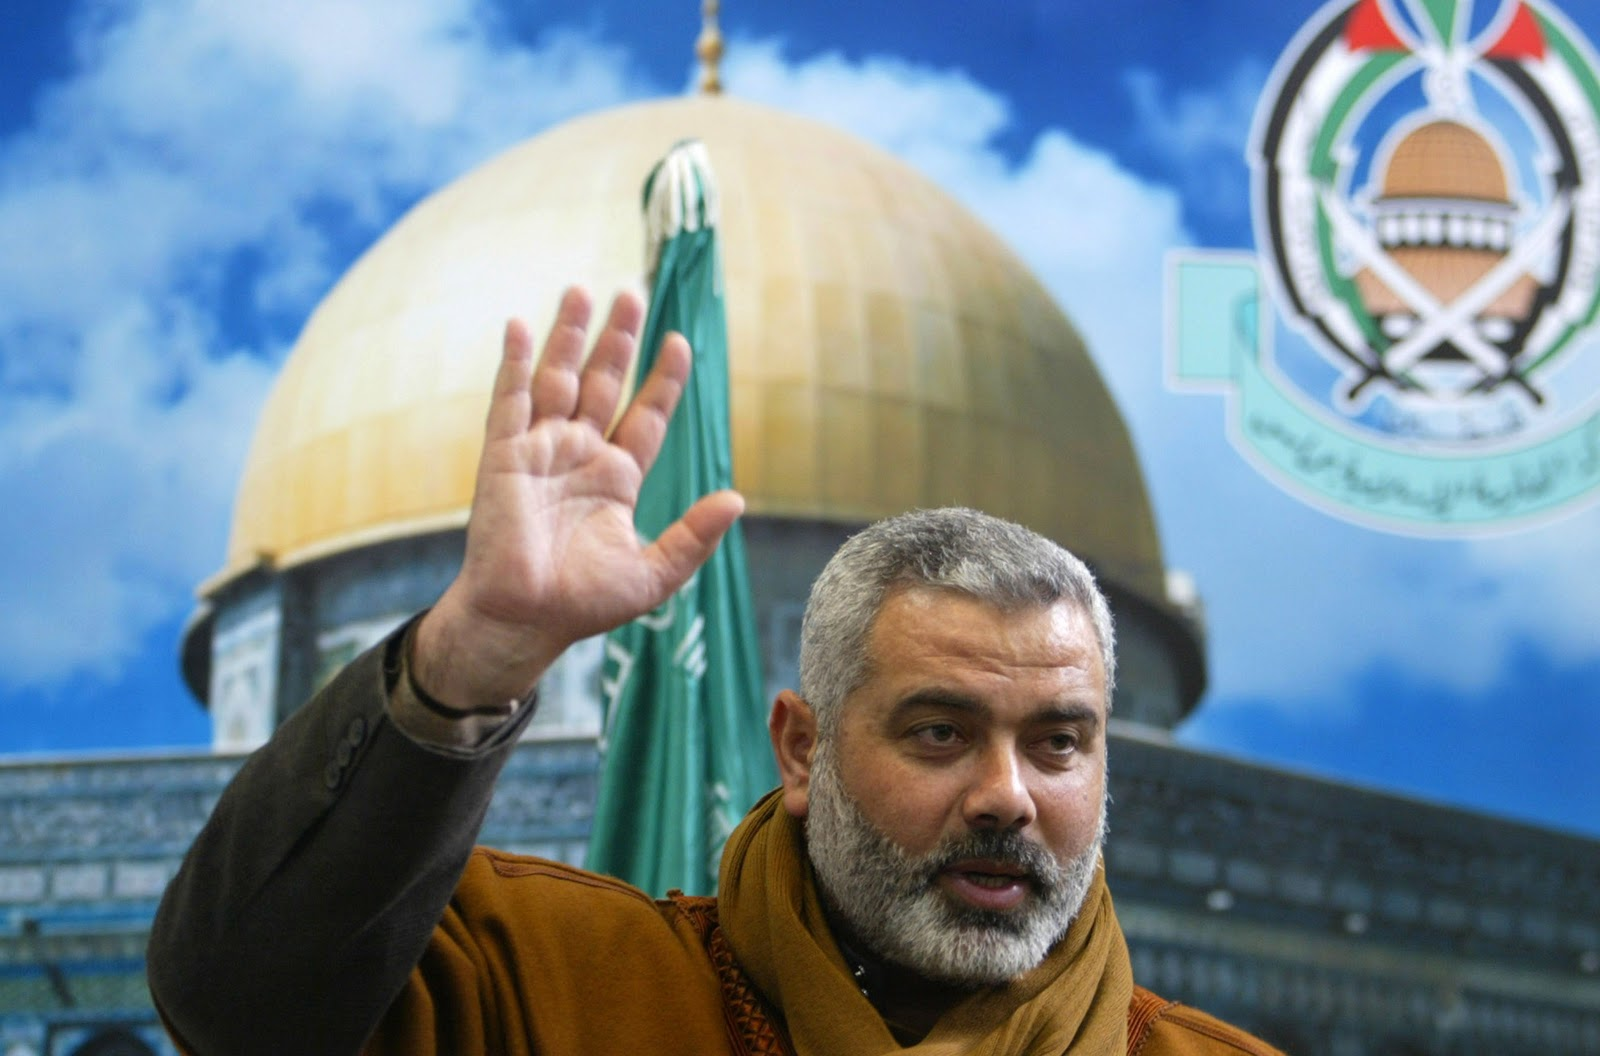 Ismail Haniyeh: A more worthy caliph if we had to choose